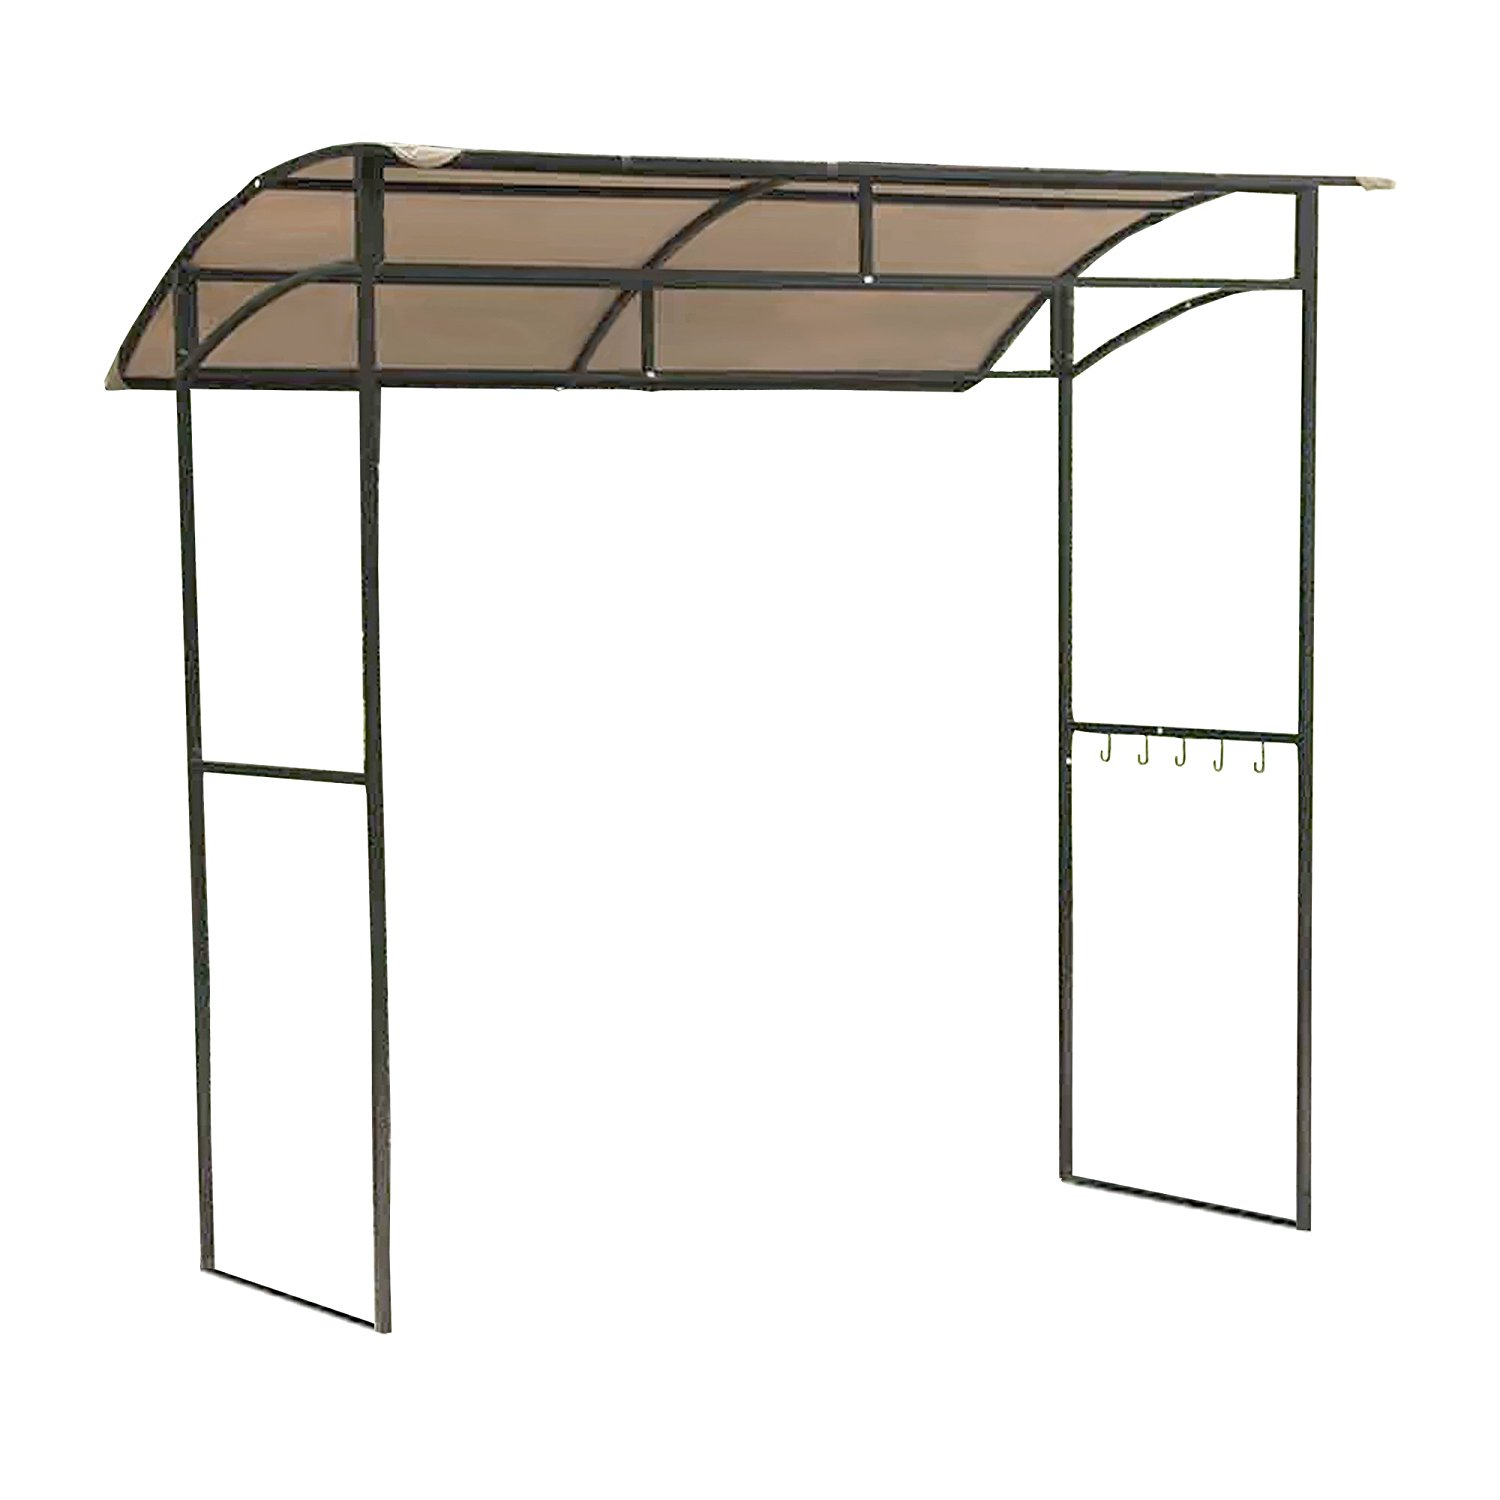 OPEN BOX - Replacement Canopy Top Cover for the Mainstays Curved Grill Shelter Gazebo - RipLock 350